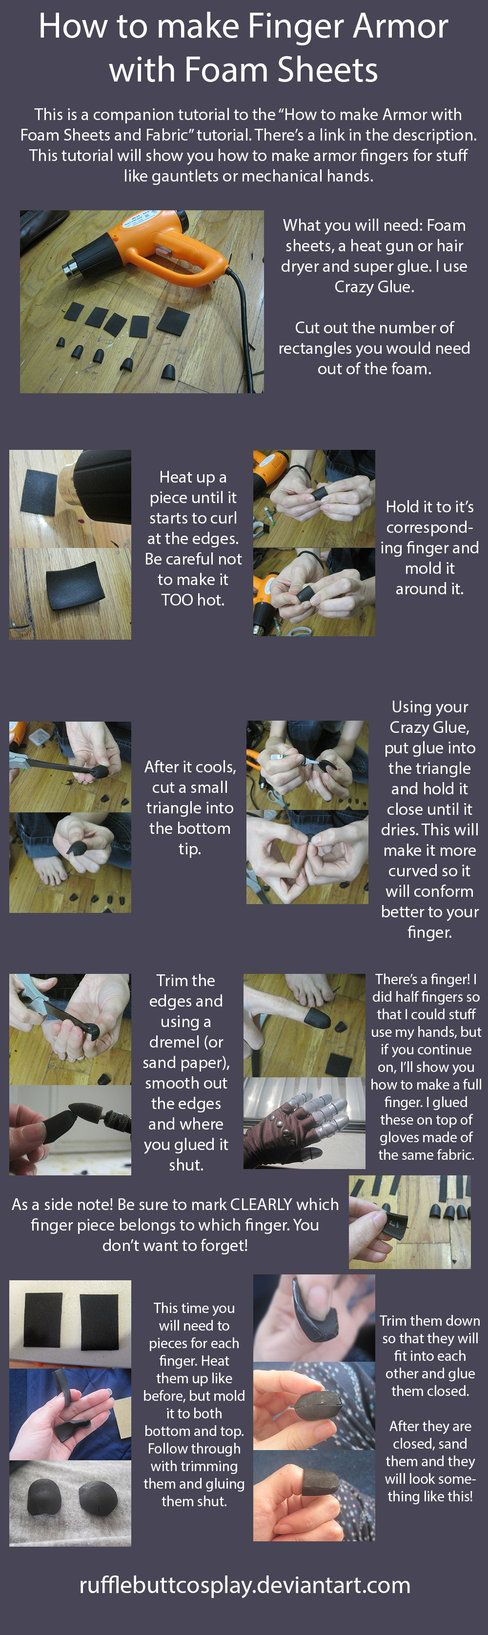 Soft foam sheets craft - How To Make Finger Armor With Foam Sheets By Rufflebuttcosplay On Deviantart